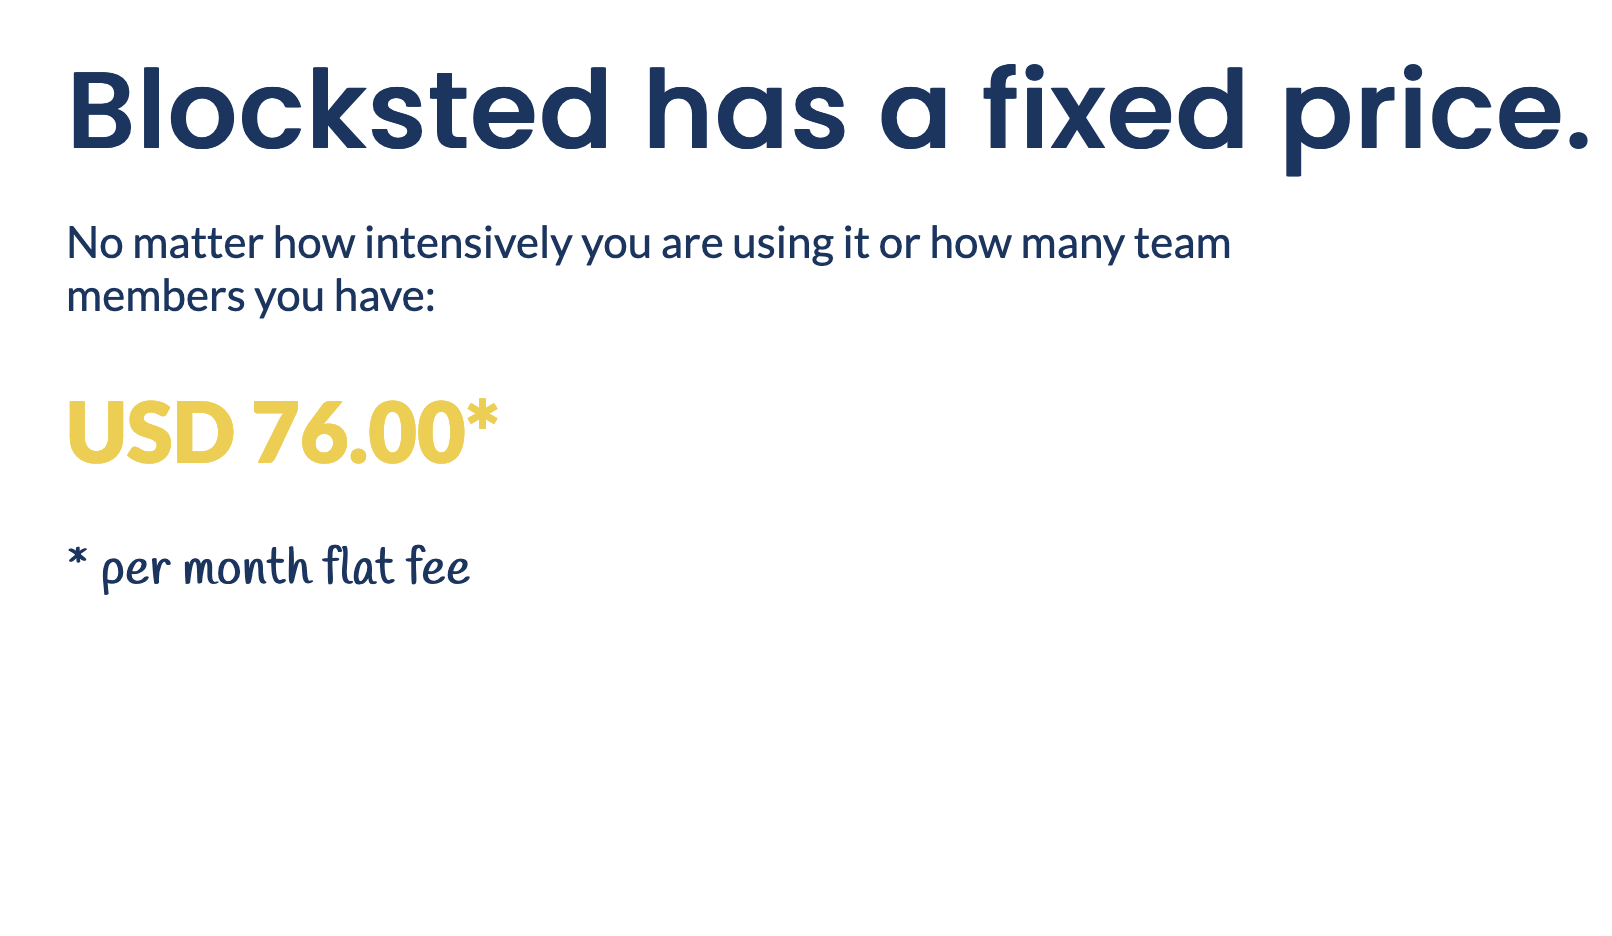 Flat monthly fee regardless of number of users.